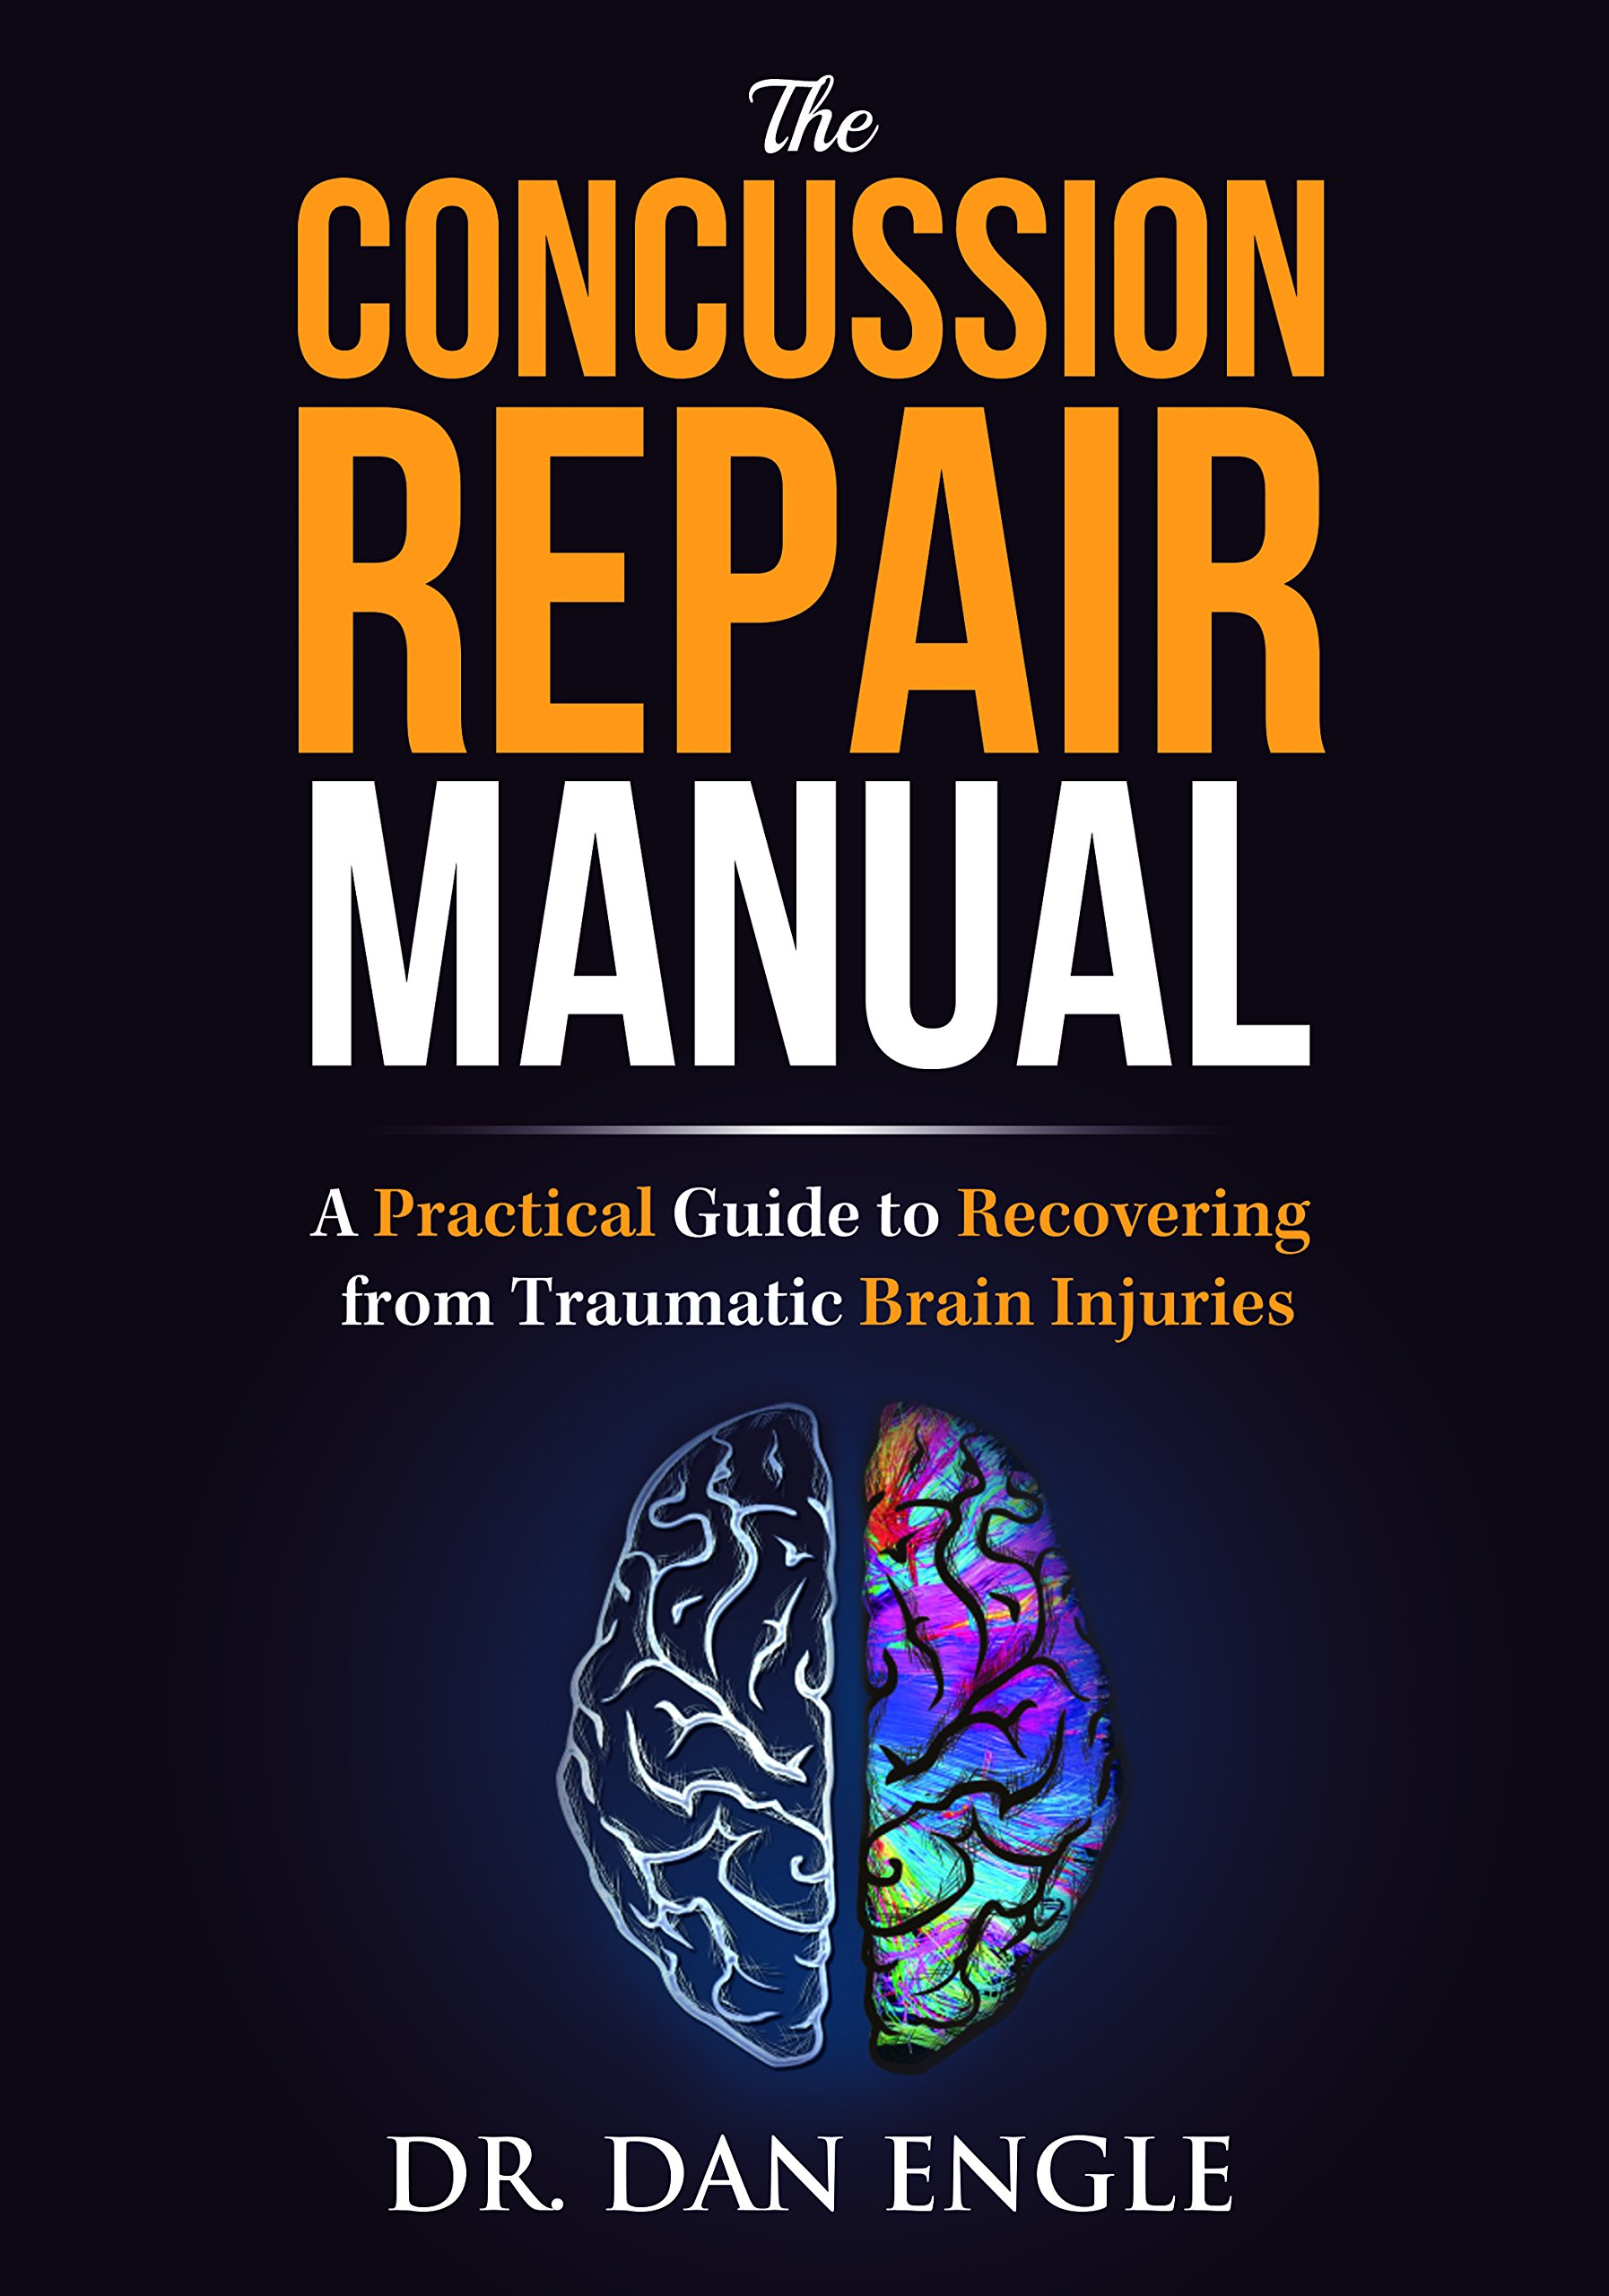 The Concussion Repair Manual: A Practical Guide to Recovering from Traumatic  Brain Injuries: Dr. Dan Engle: 9781946697349: Amazon.com: Books